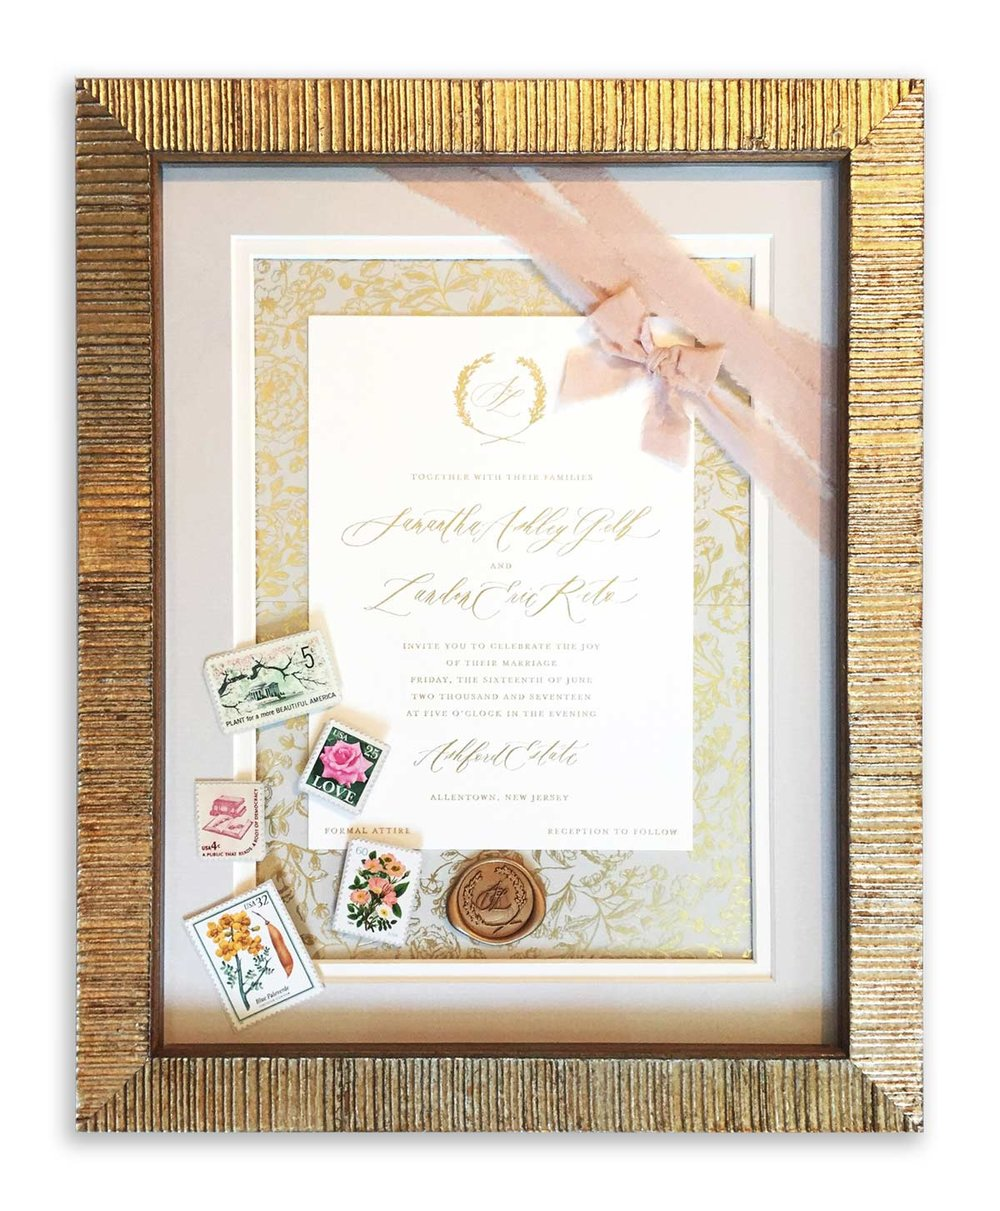 Summer Winner: LORI SLOCUM  of FRAME IT YOURSELF; Fair Haven, NJ